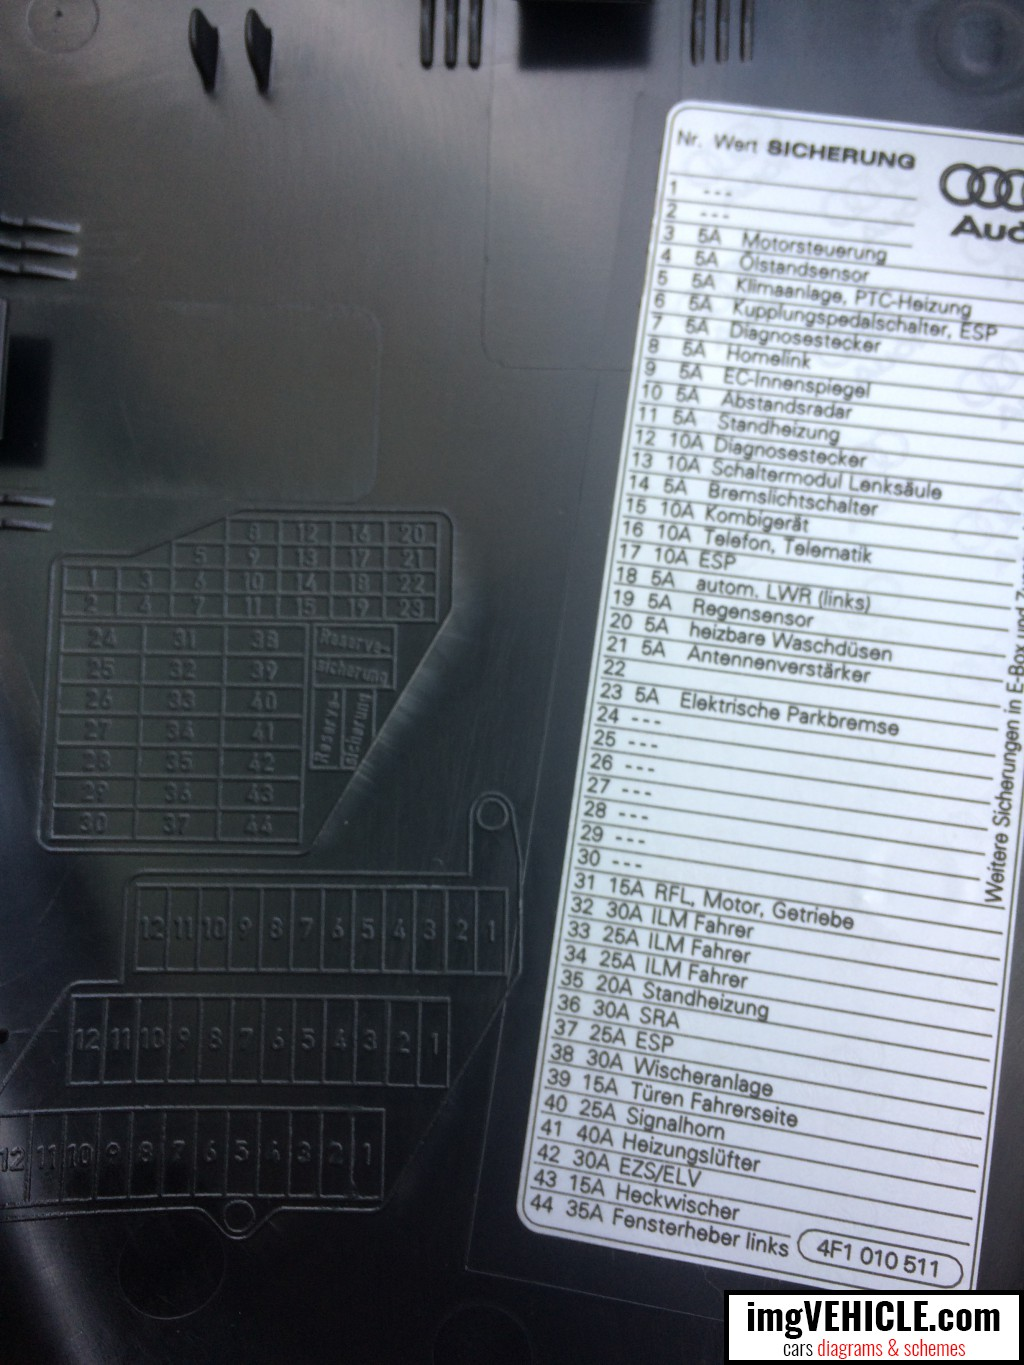 Audi A6 C6 (2004-2011) Fuse box diagrams & schemes - imgVEHICLE.com | Audi A6 Fuse Box Diagram |  | imgVEHICLE.com